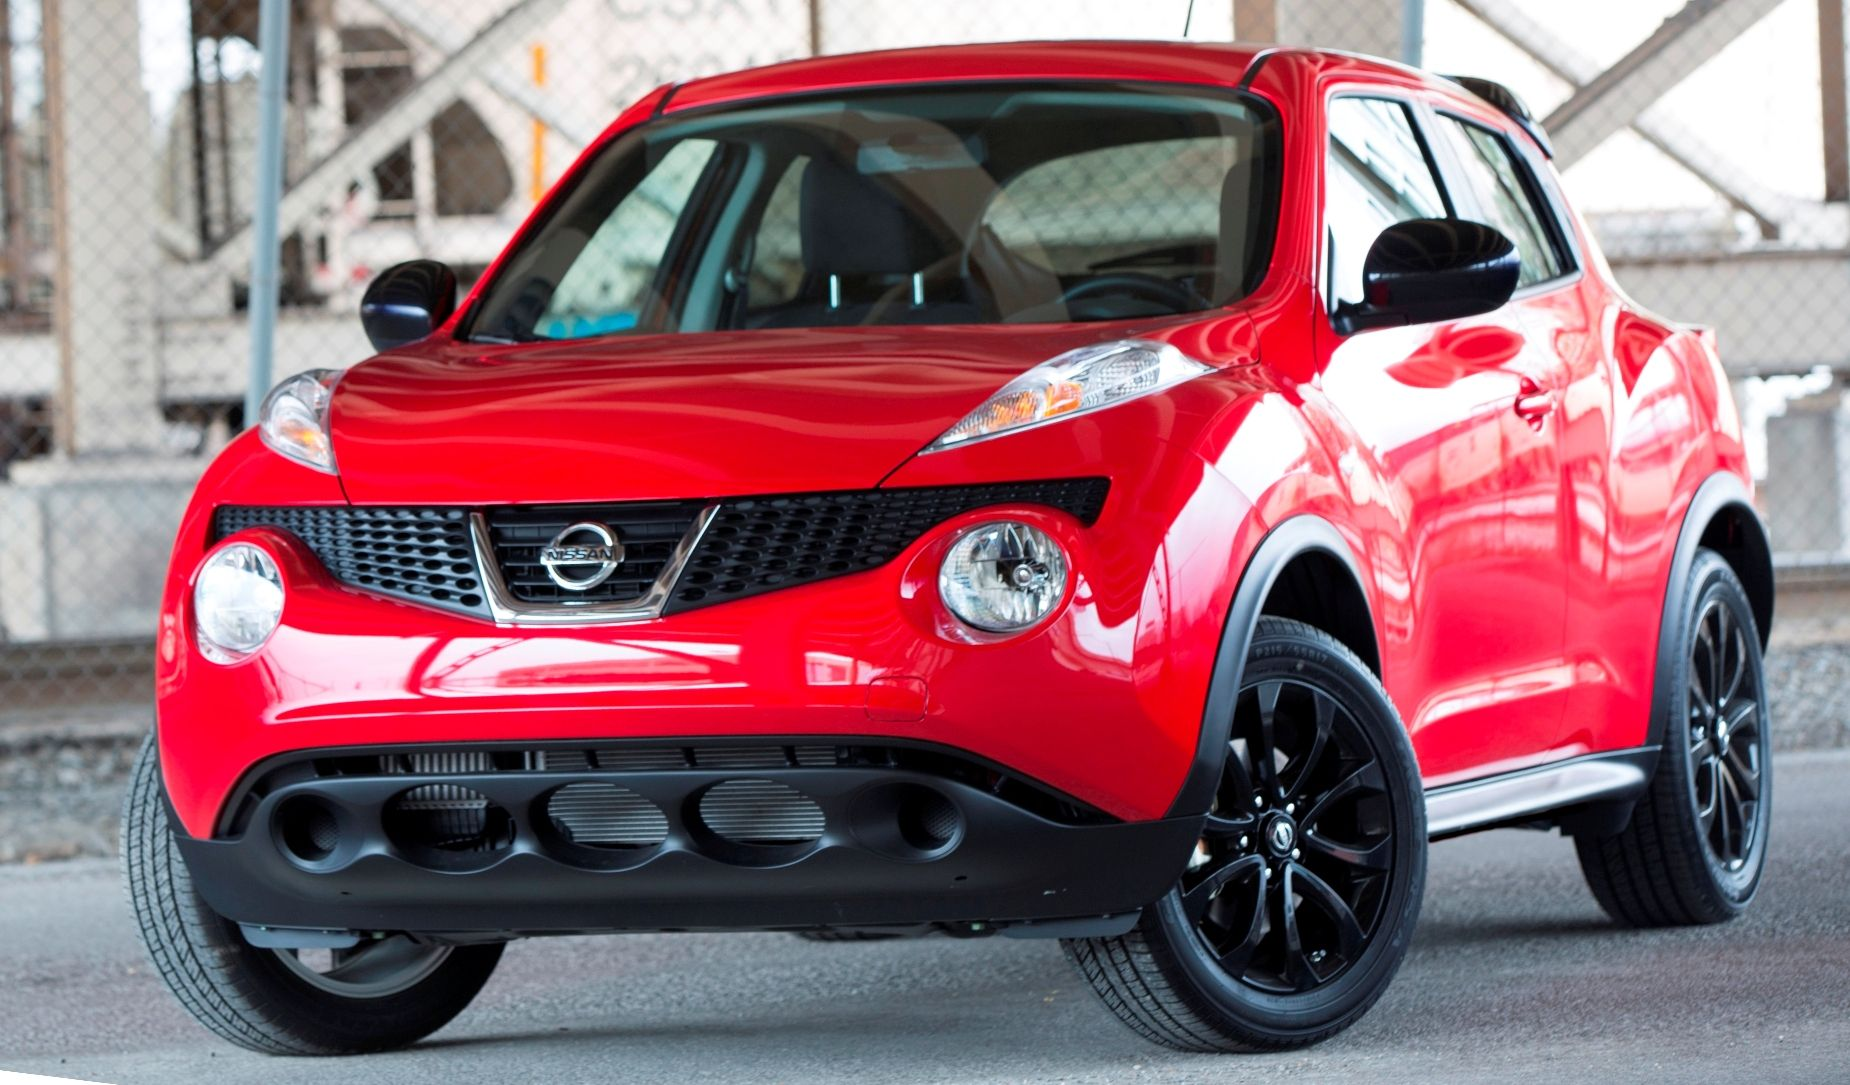 503e34ba34d19b096cc726cbd590e42d Take A Look About Nissan Juke Custom with Fabulous Photos Cars Review